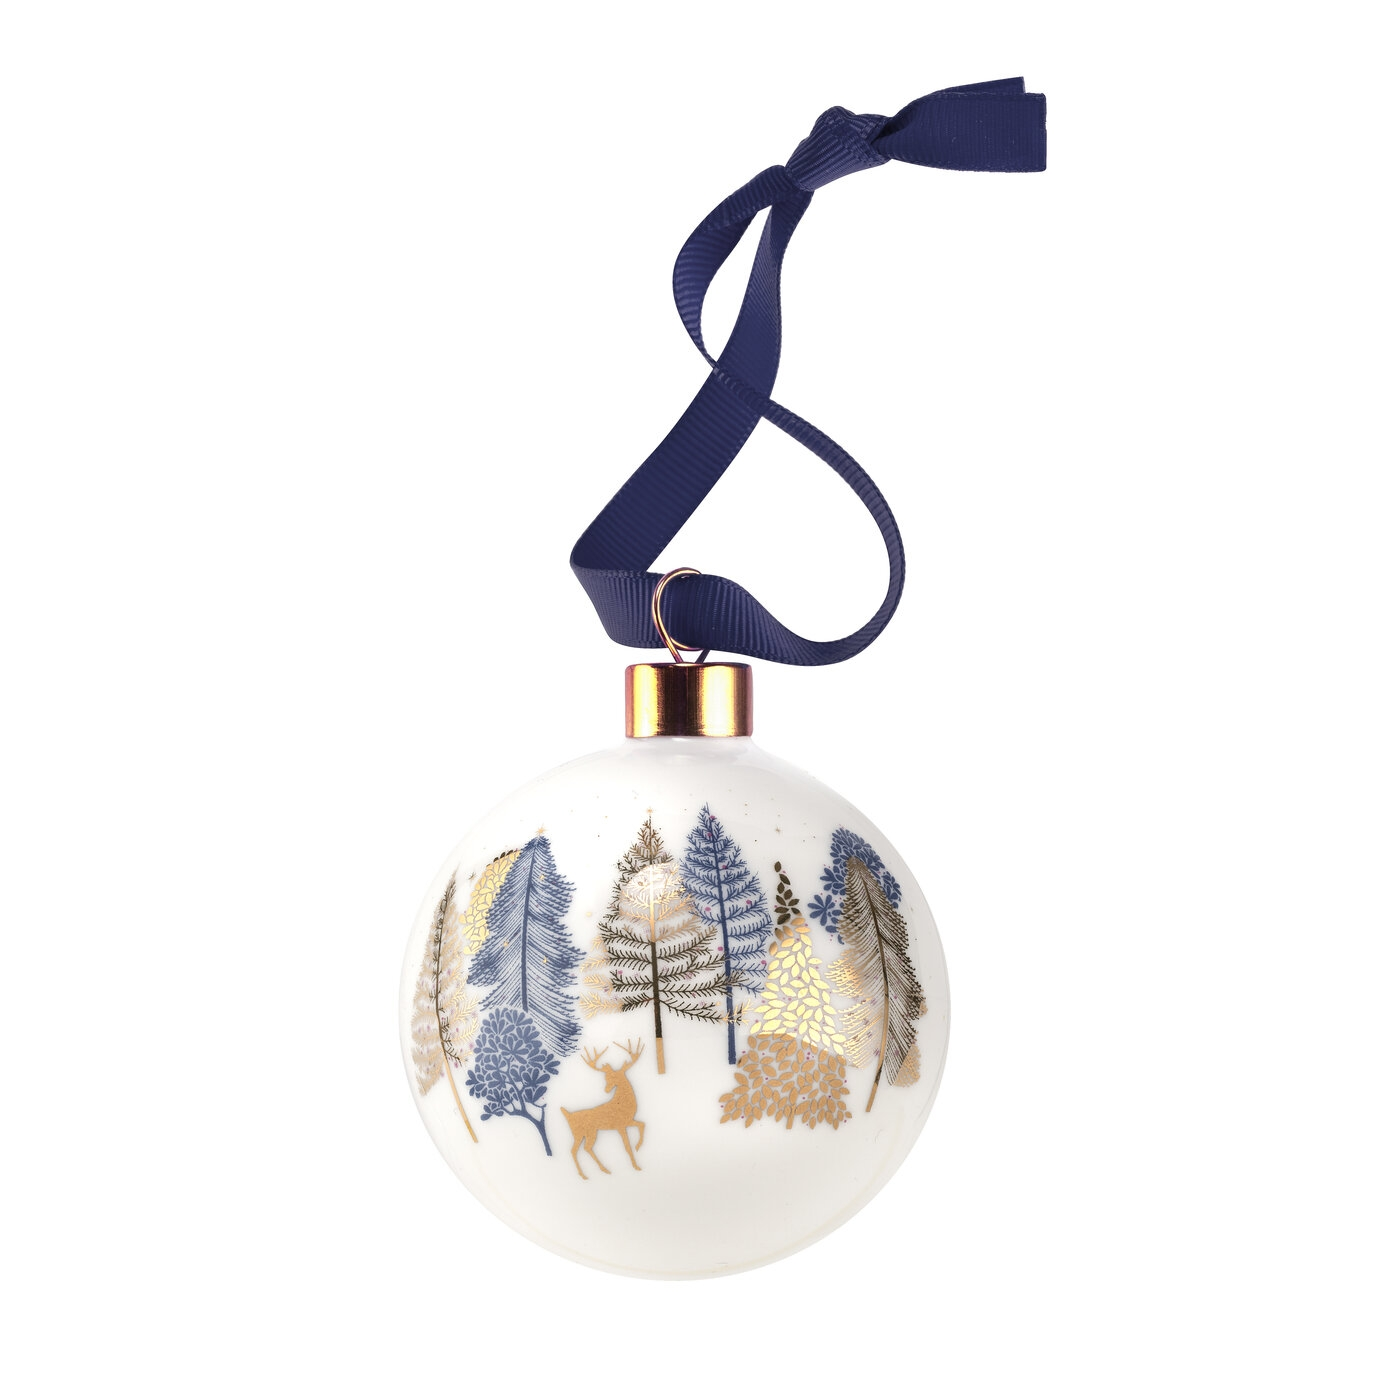 Sara Miller for Portmeirion Prancing Deer Bauble image number 0